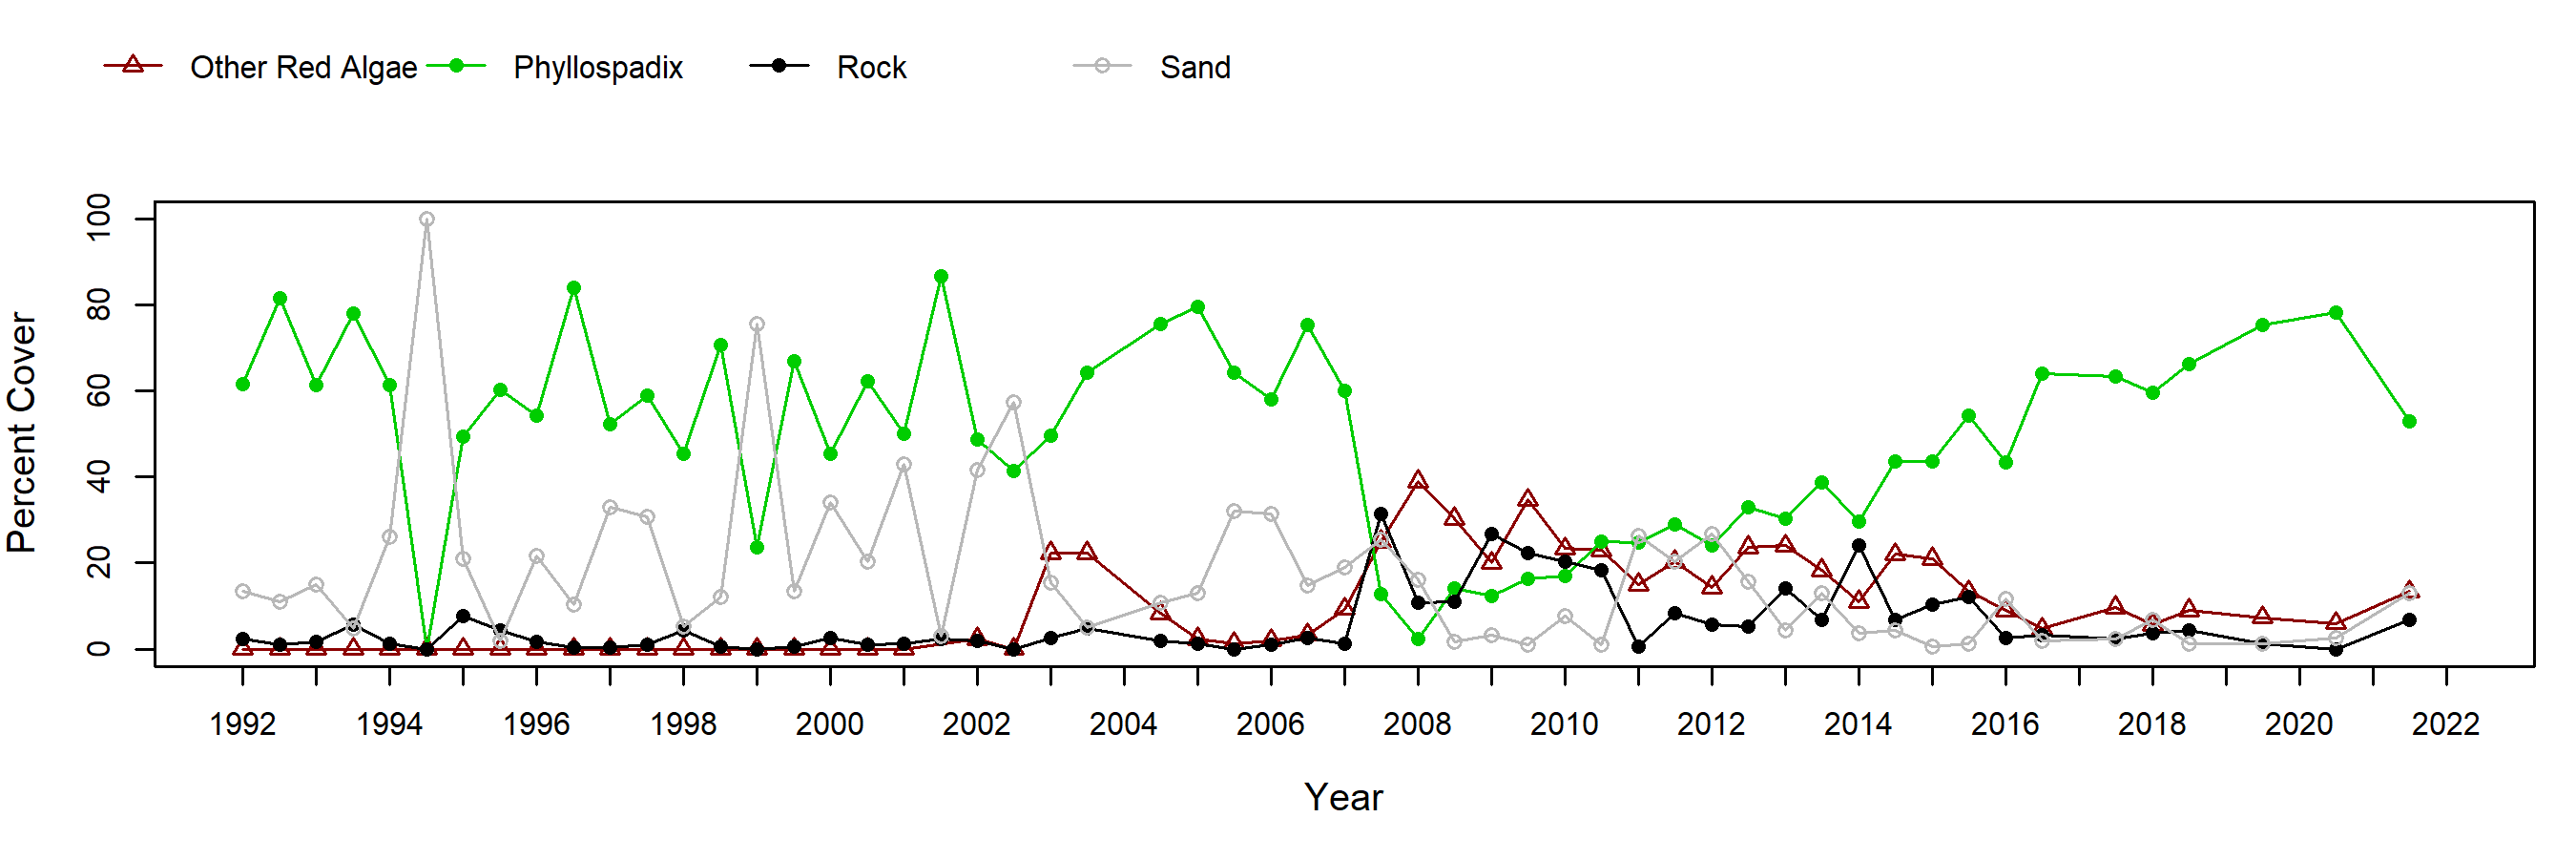 Coal Oil Point surfgrass trend plot